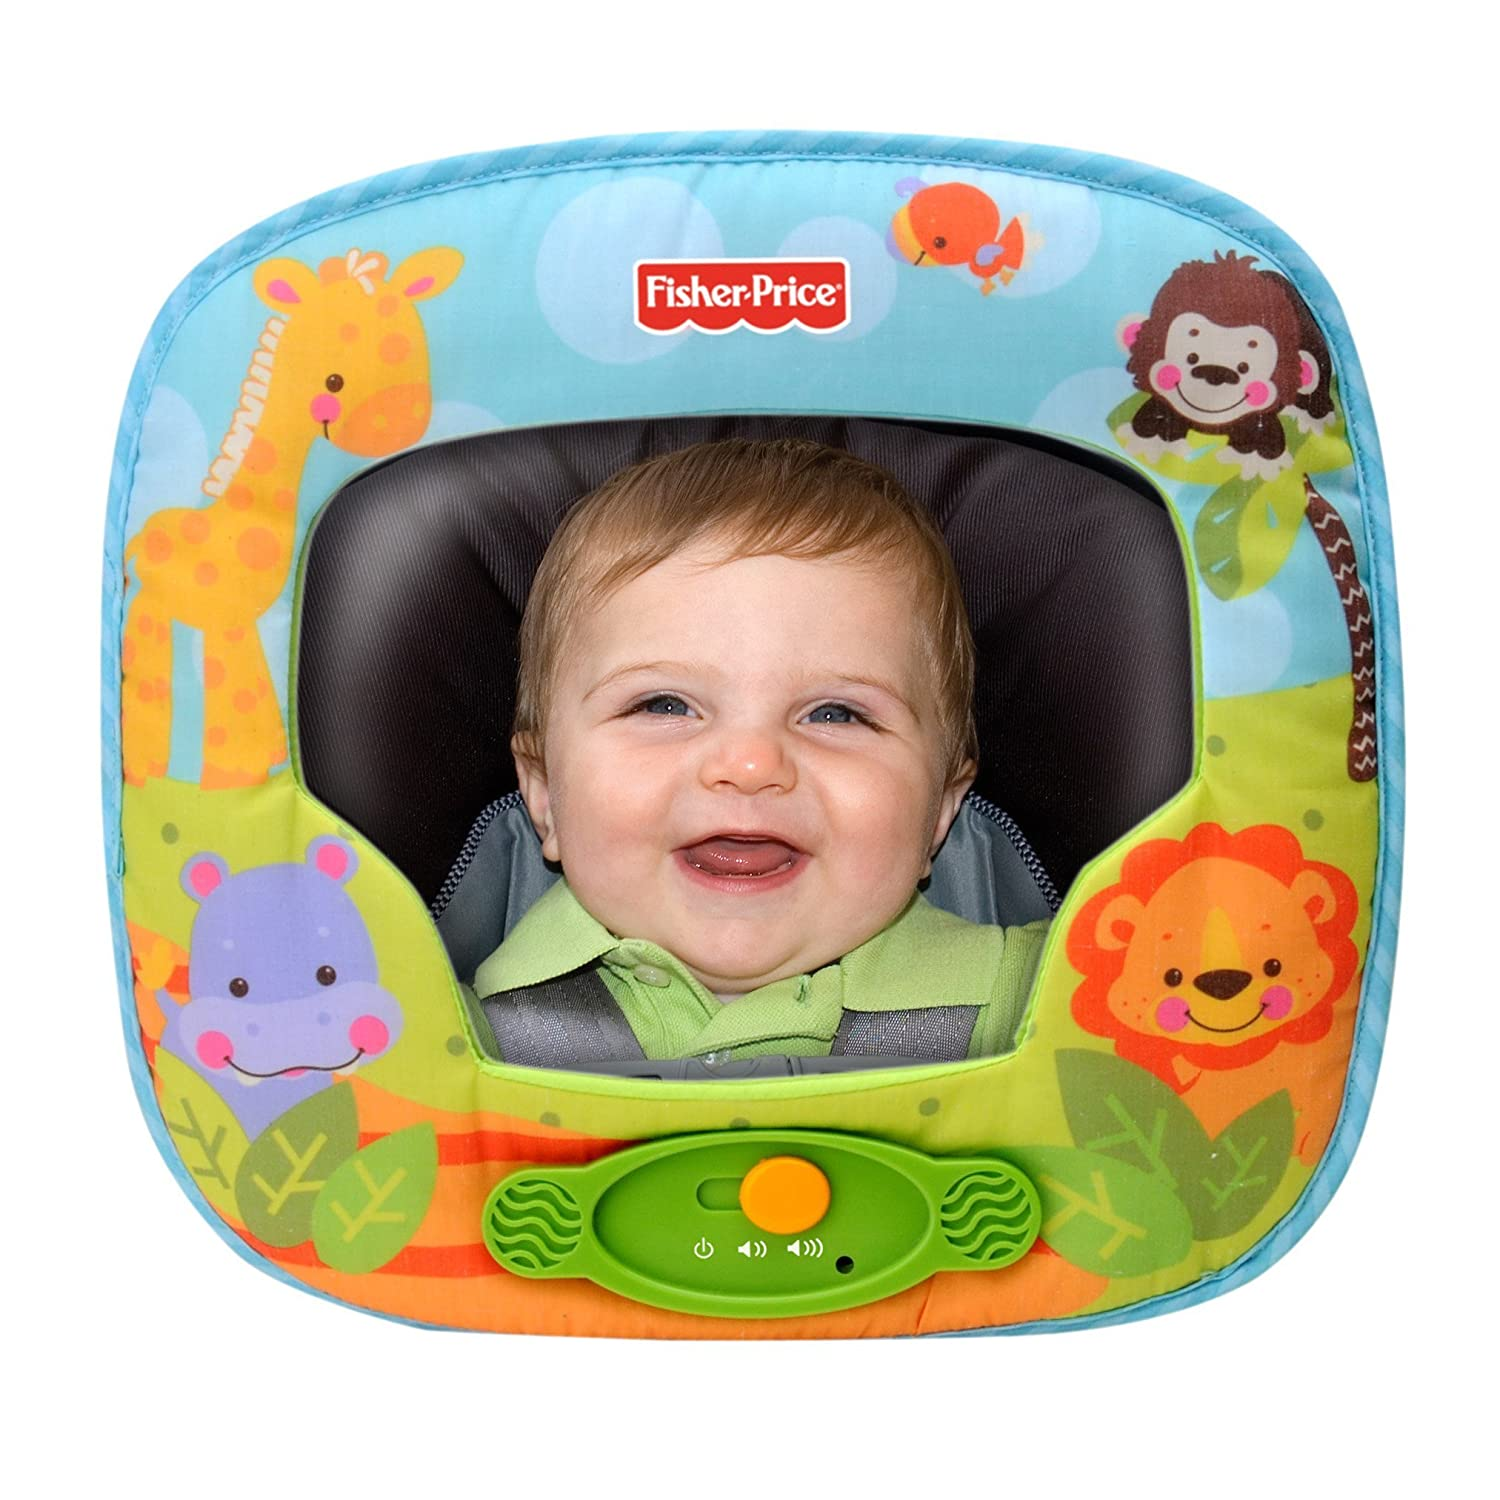 Fisher-Price Precious Planet Deluxe Auto Mirror with Music